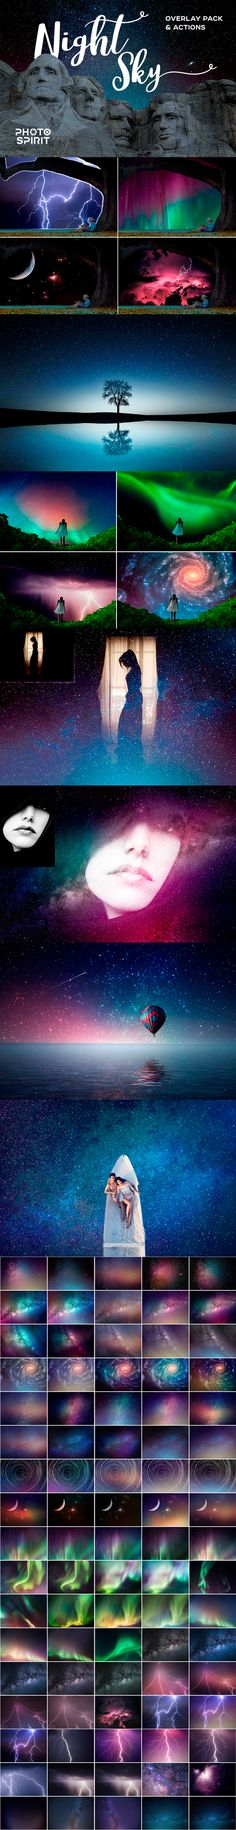 Night Sky Background Overlays - #Photo #Effects #Actions